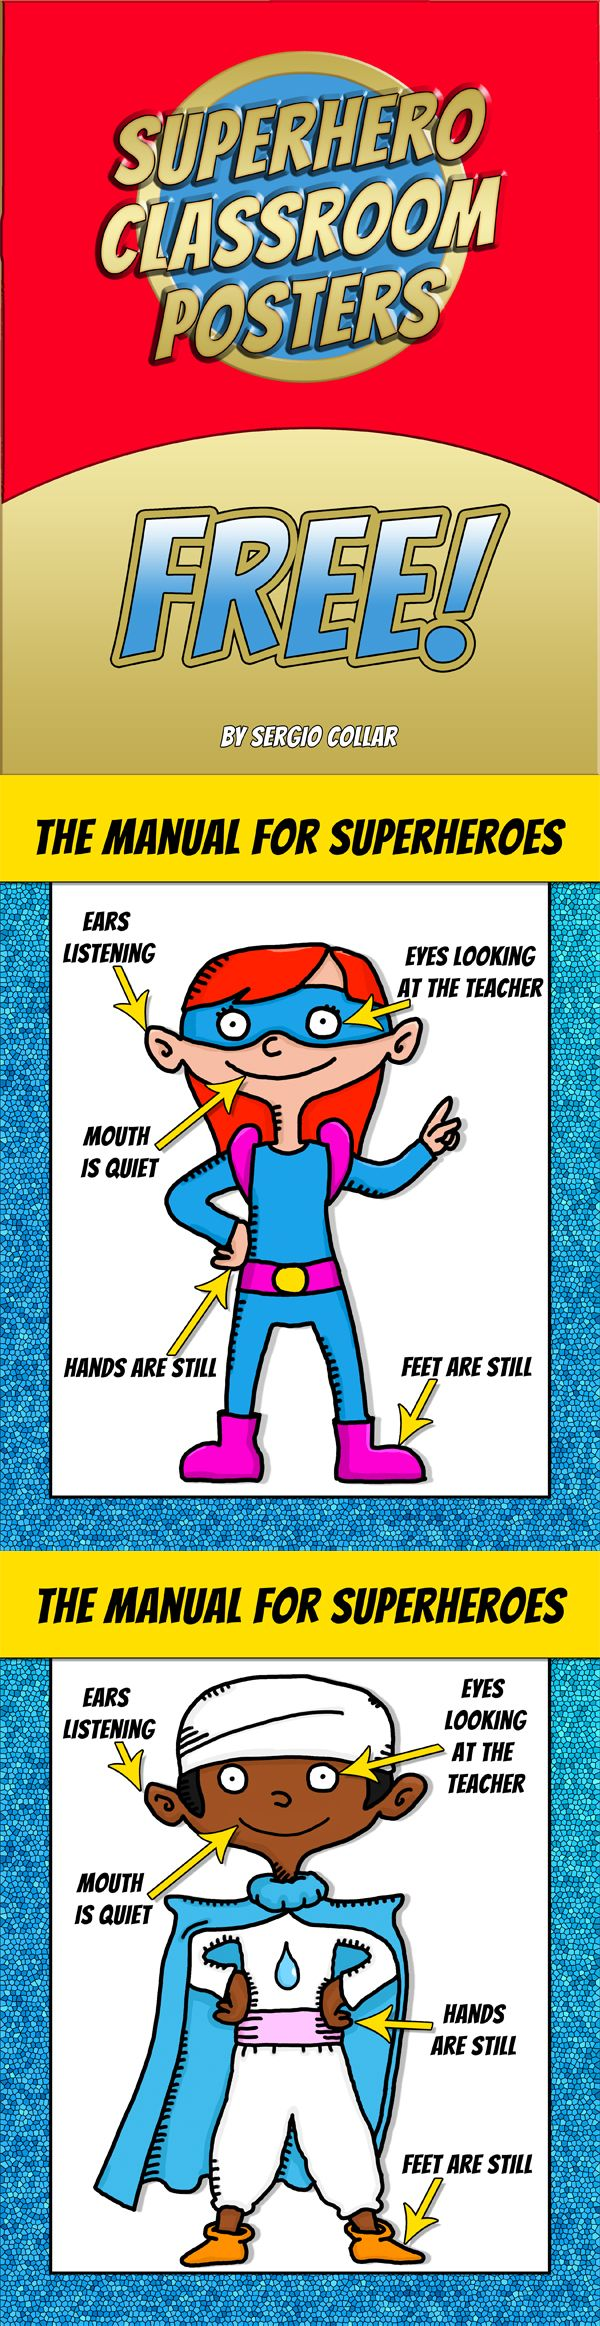 SUPERHERO CLASSROOM POSTERS – FREE   2 Cool Behaviour Rules Posters for your classroom!  If you like these posters you may like: SUPERHERO CLASSROO...